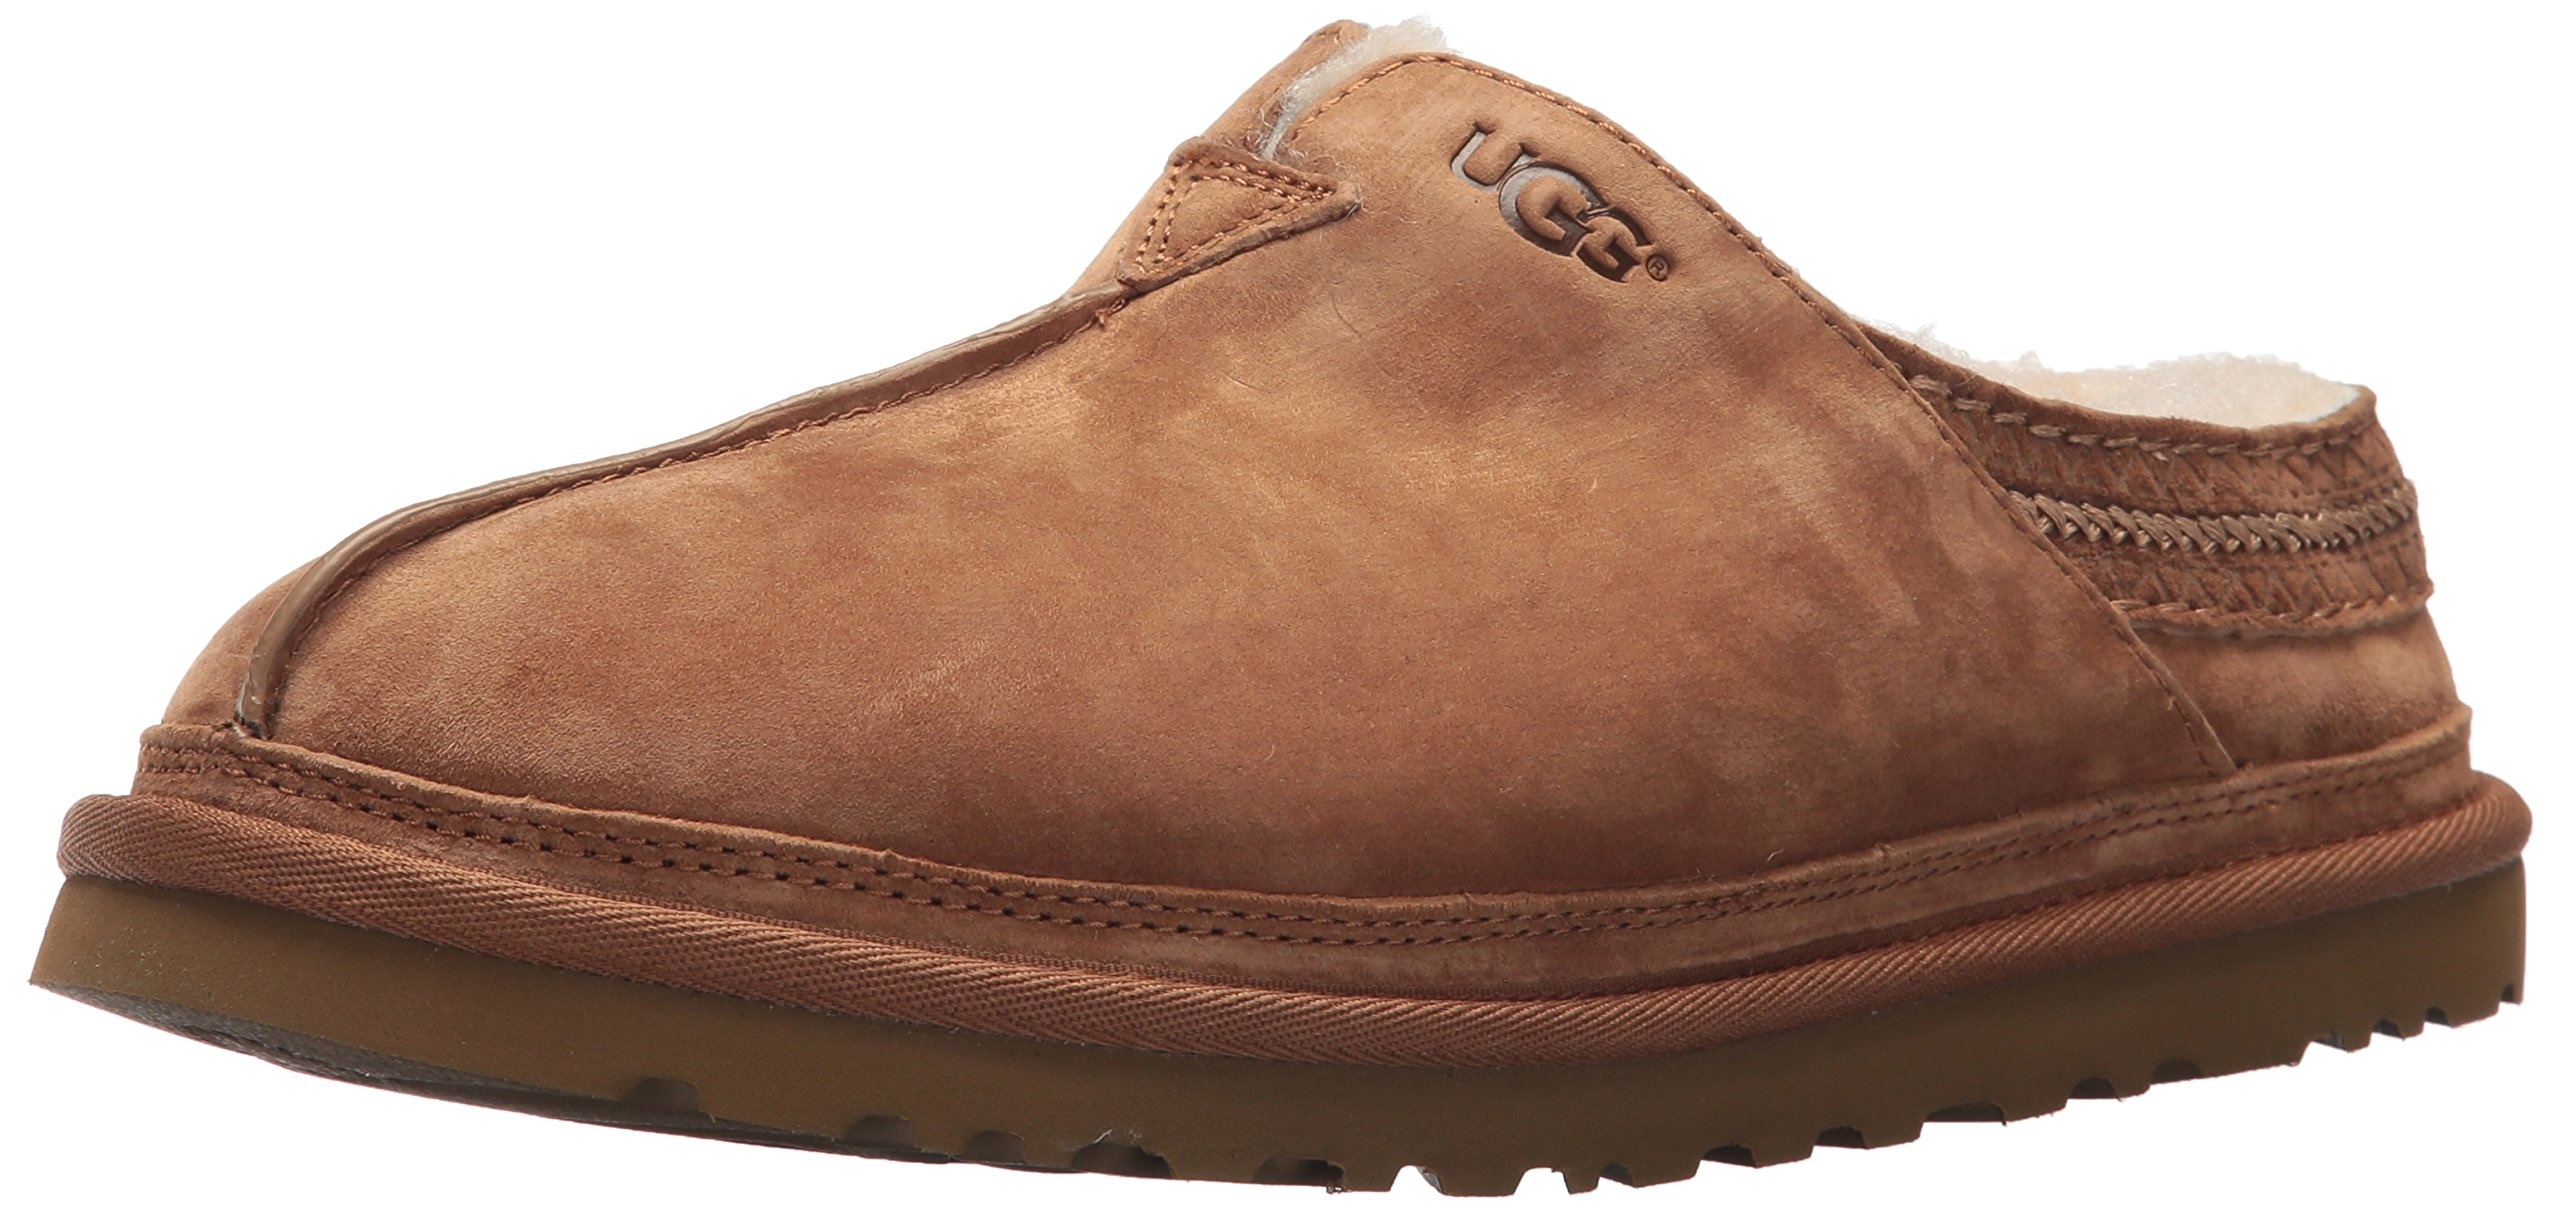 UGG Men's Neuman Clog, Chestnut, 10 US/10 M US